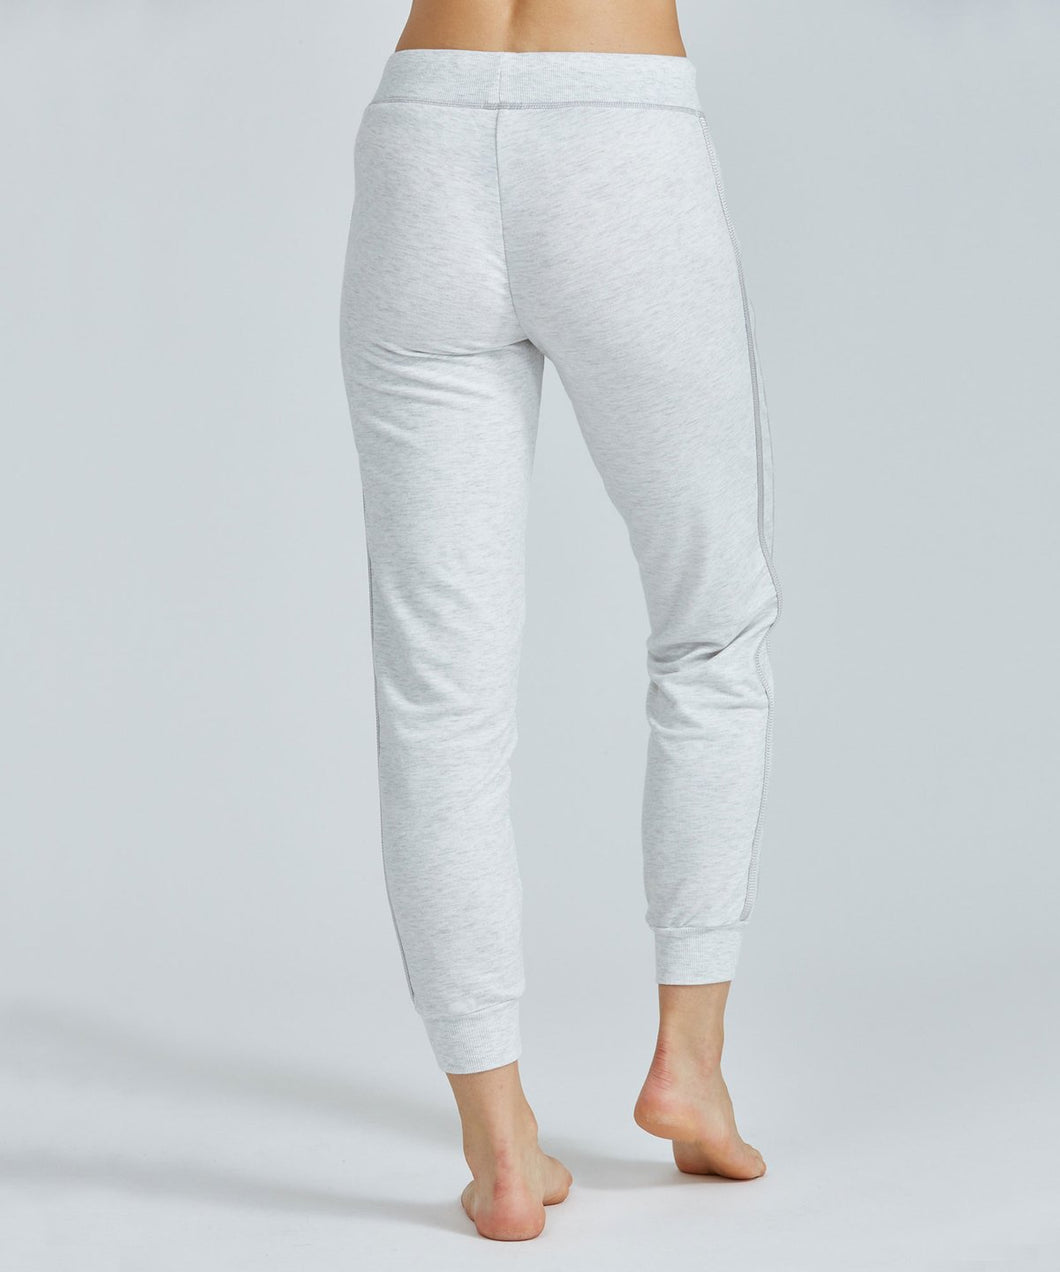 Prism Sport Track Pant - French Terry Mist